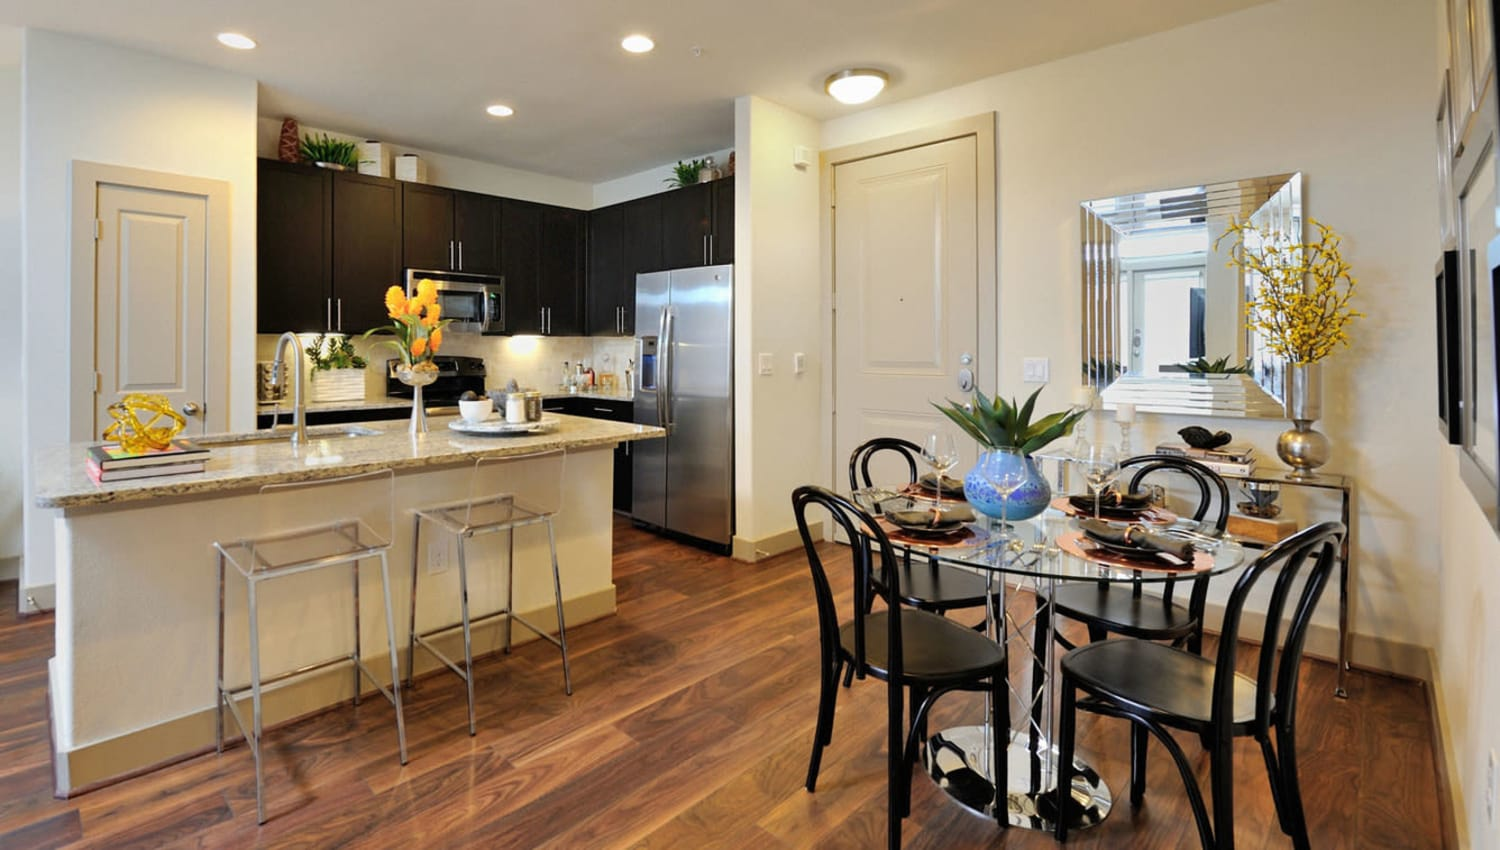 Dining table and kitchen area at Olympus Falcon Landing in Katy, Texas